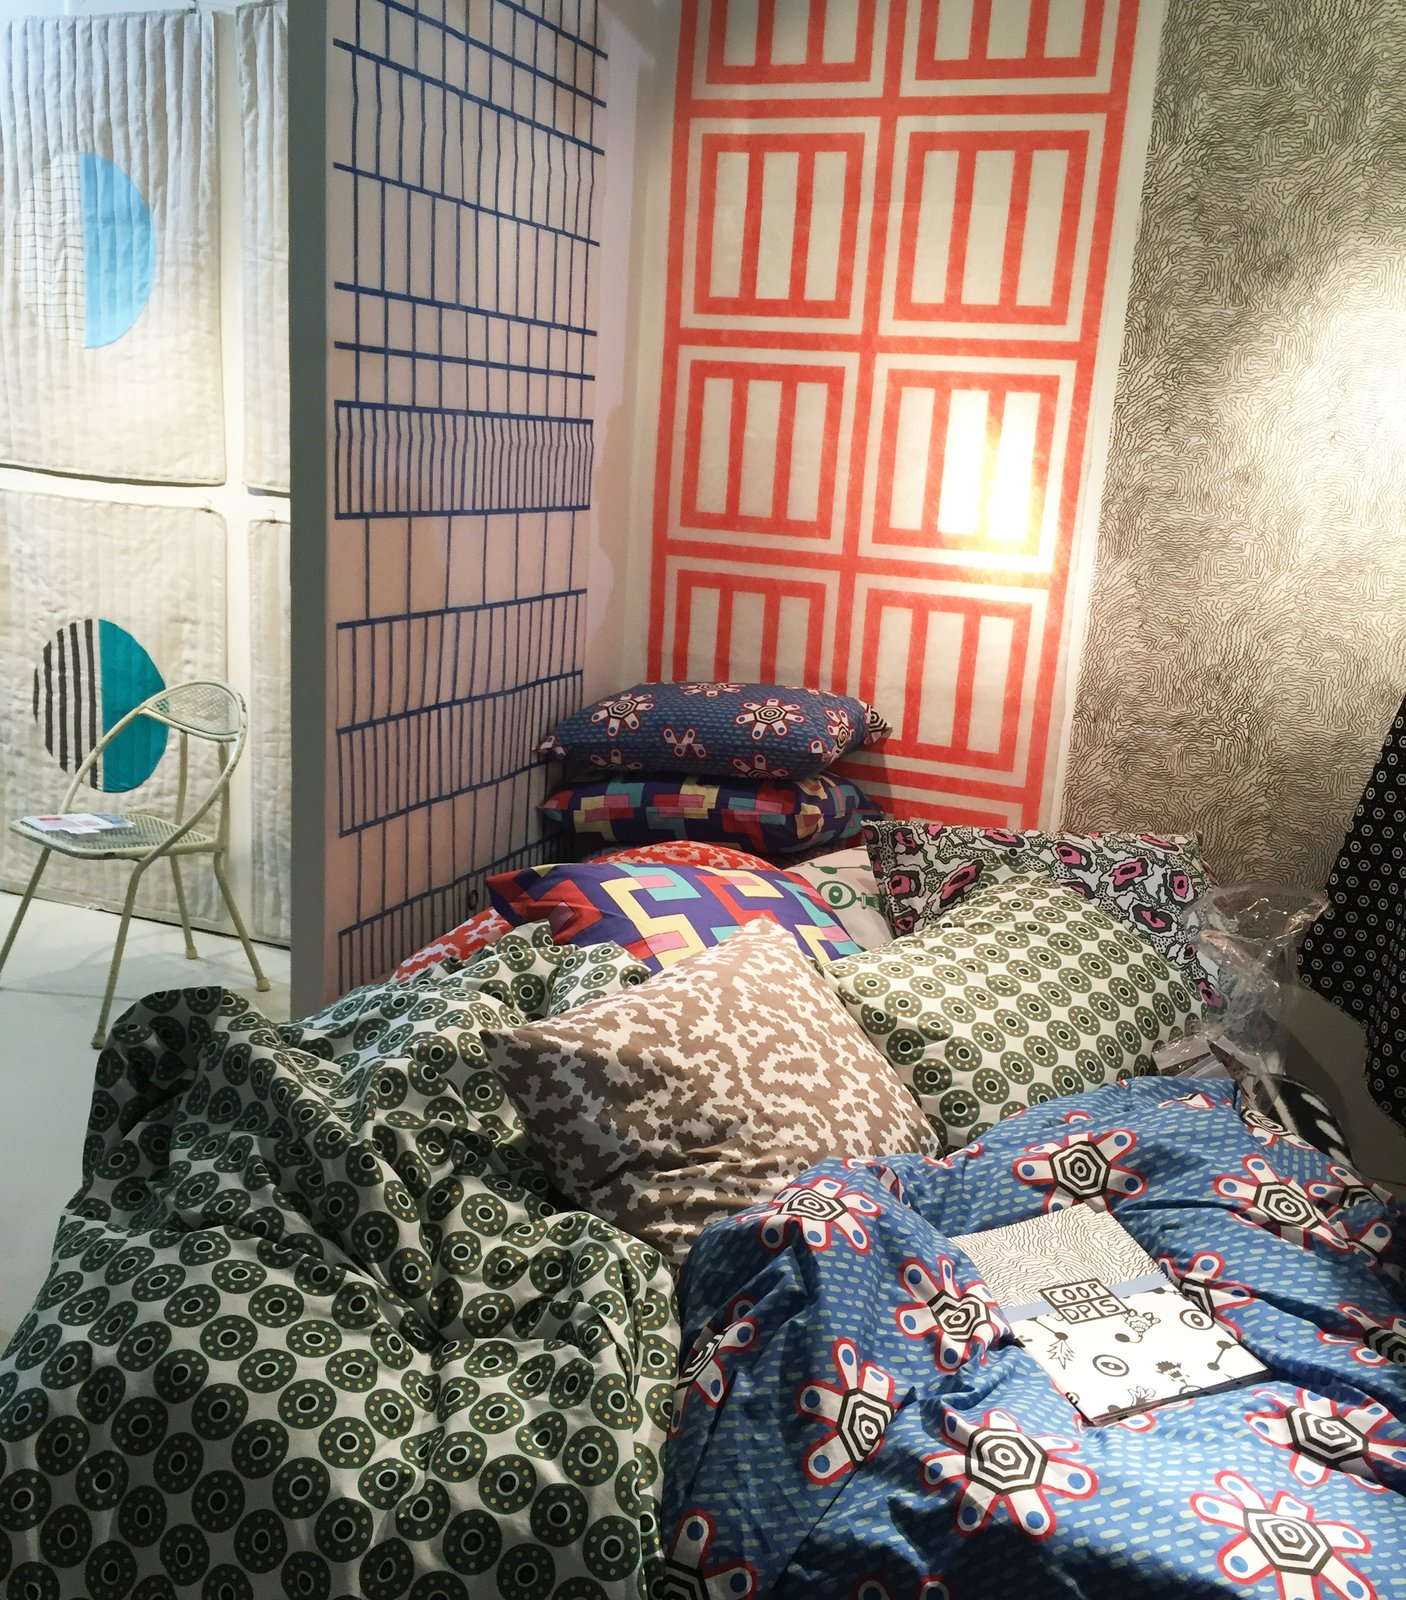 From ZigZag Zurich's colorful booth, the CoopDPS collection of wallpaper, fabric, and bedding was designed by Nathalie Du Pasquier and George Sowden, two of the founding members of the Memphis Design group. #DwellNow #sightunseenoffsite #zigzagzurich #coopdps #memphisdesign #pattern #bedding #wallpaper #color #nathaliedupasquier #georgesowden